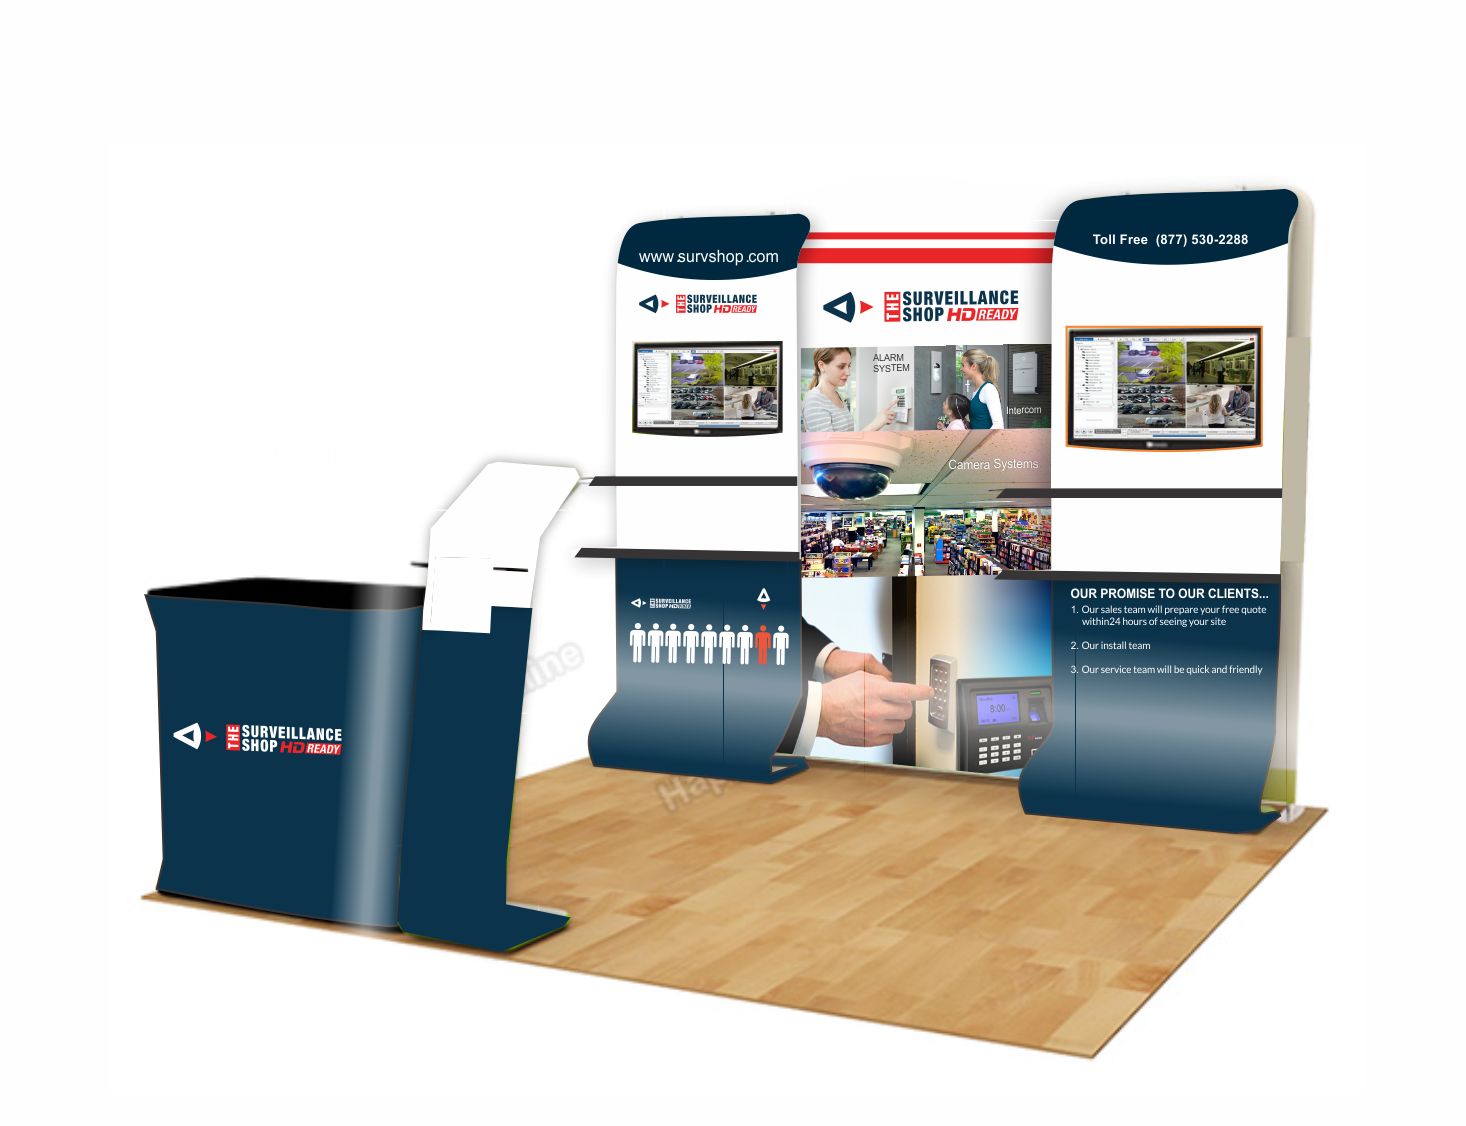 Trade Show Booth Layout : Upmarket bold digital trade show booth design for a